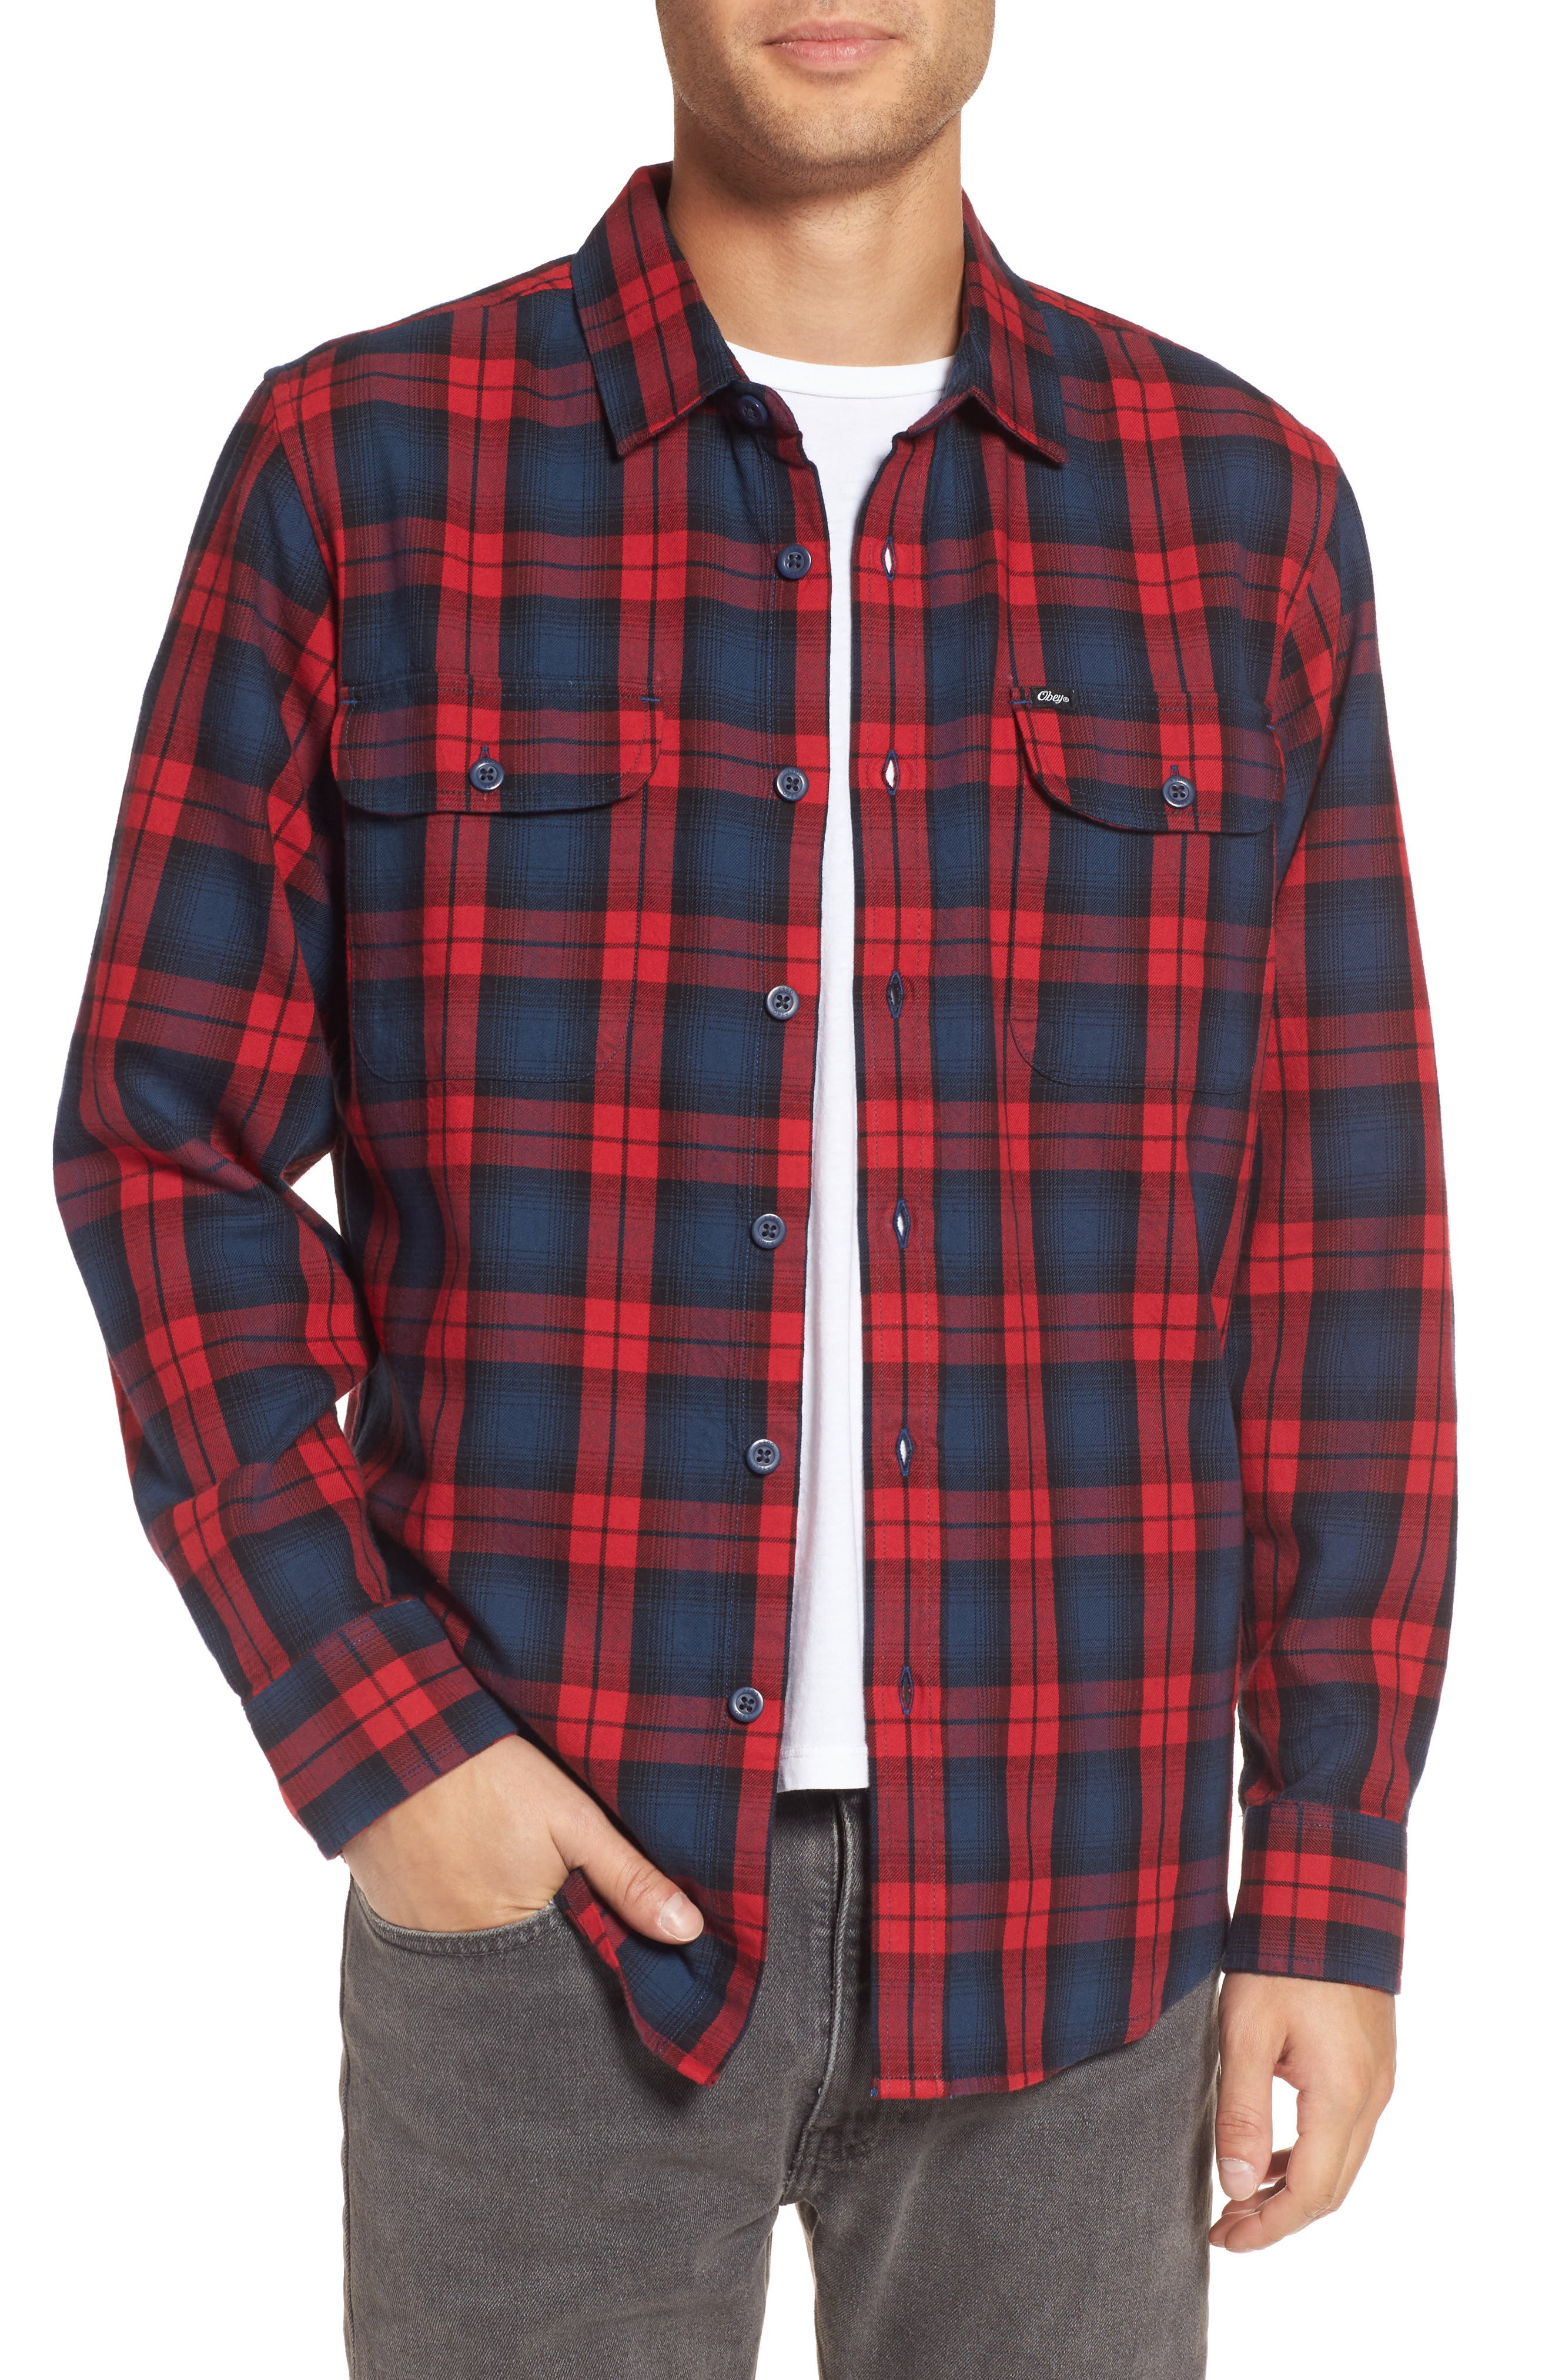 Norwich Plaid Woven Shirt,                         Main,                         color, Red Multi